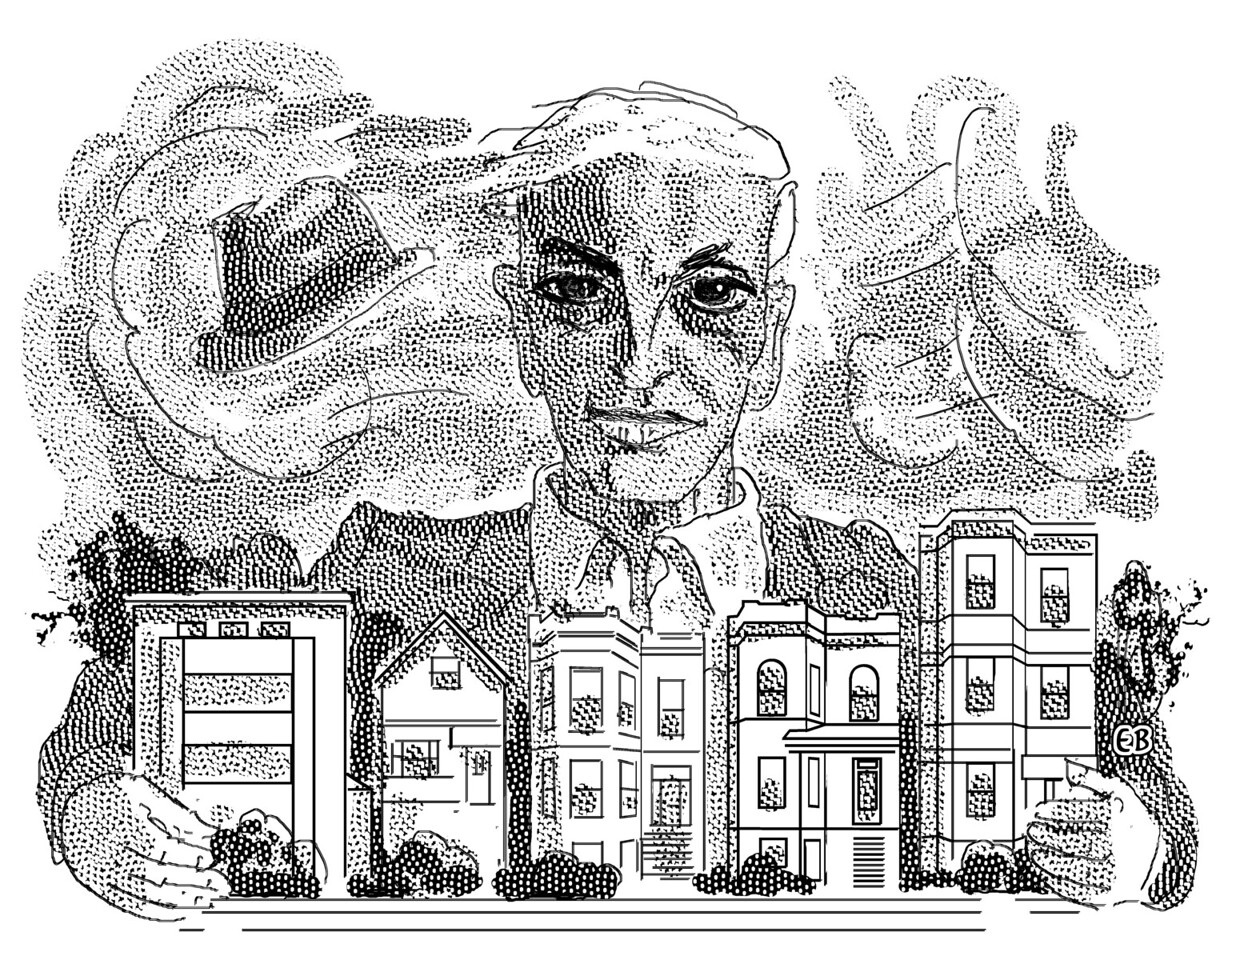 Saul Bellow; illustration from the Claremont Review of Books, Winter 2015-2016